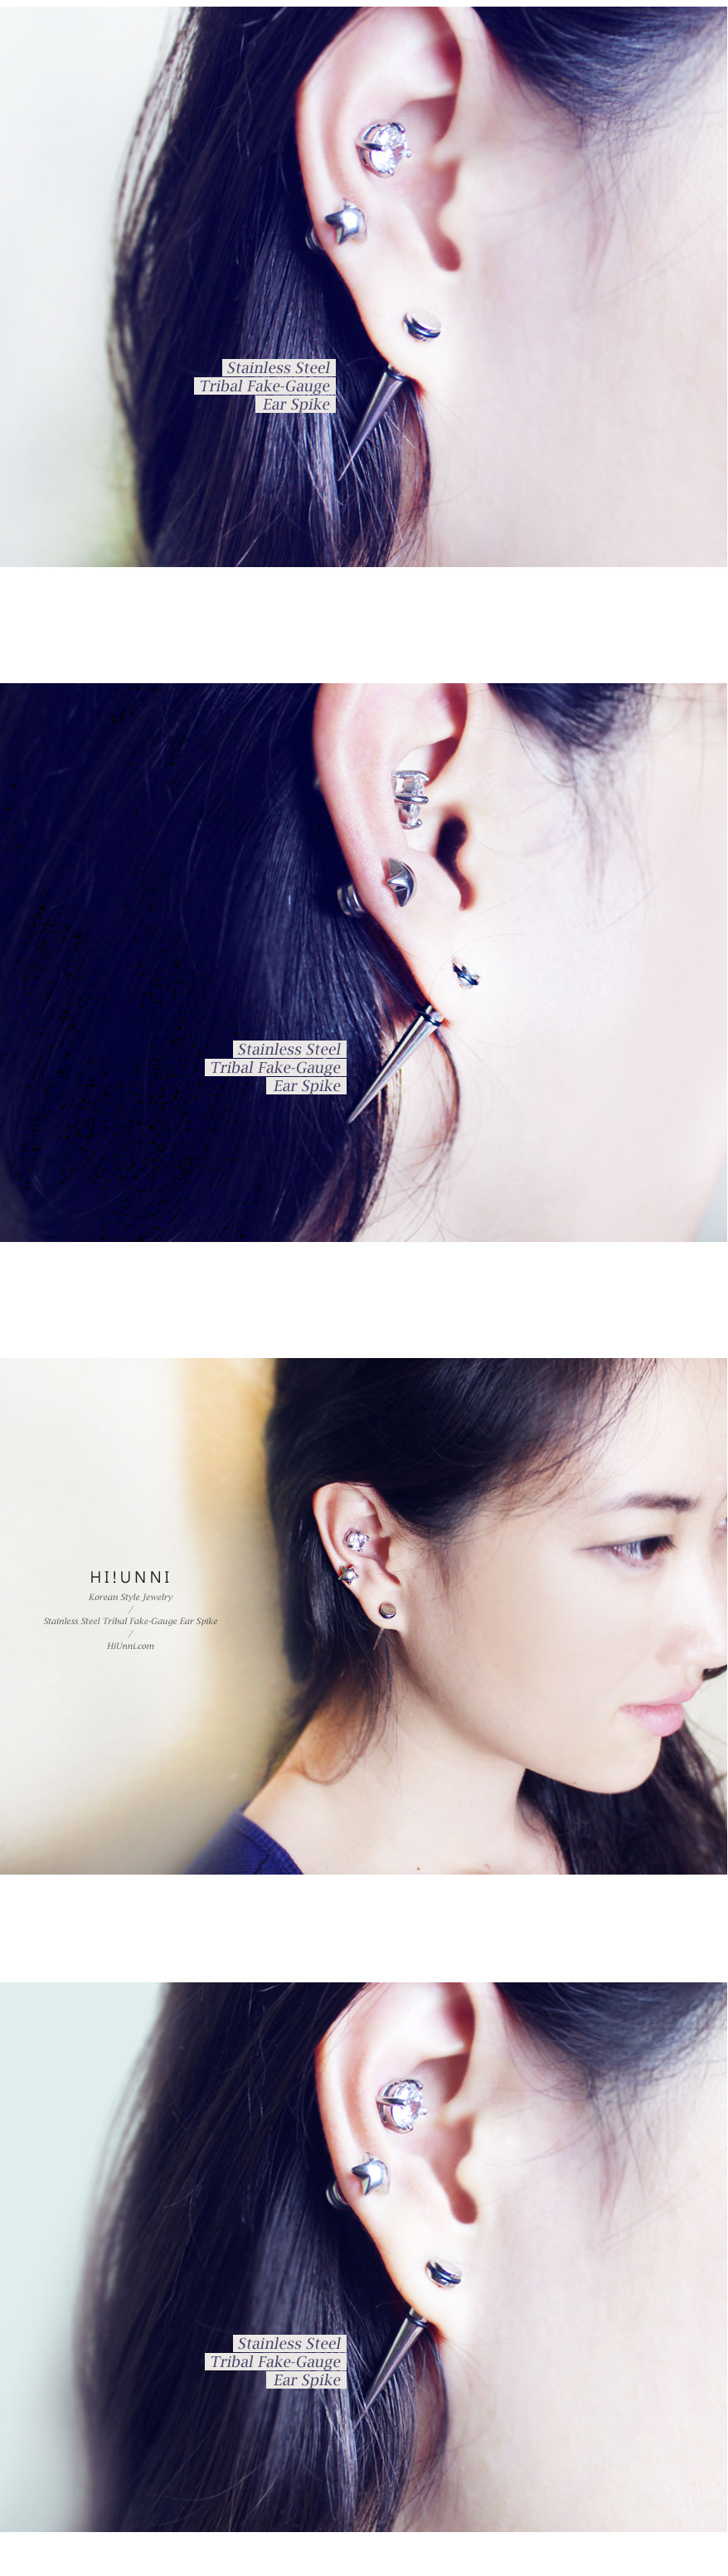 ear_studs_piercing_Cartilage_earrings_16g_316l_Surgical_Stainless_Steel_korean_asian_style_jewelry_fake_Gauge_taper_5